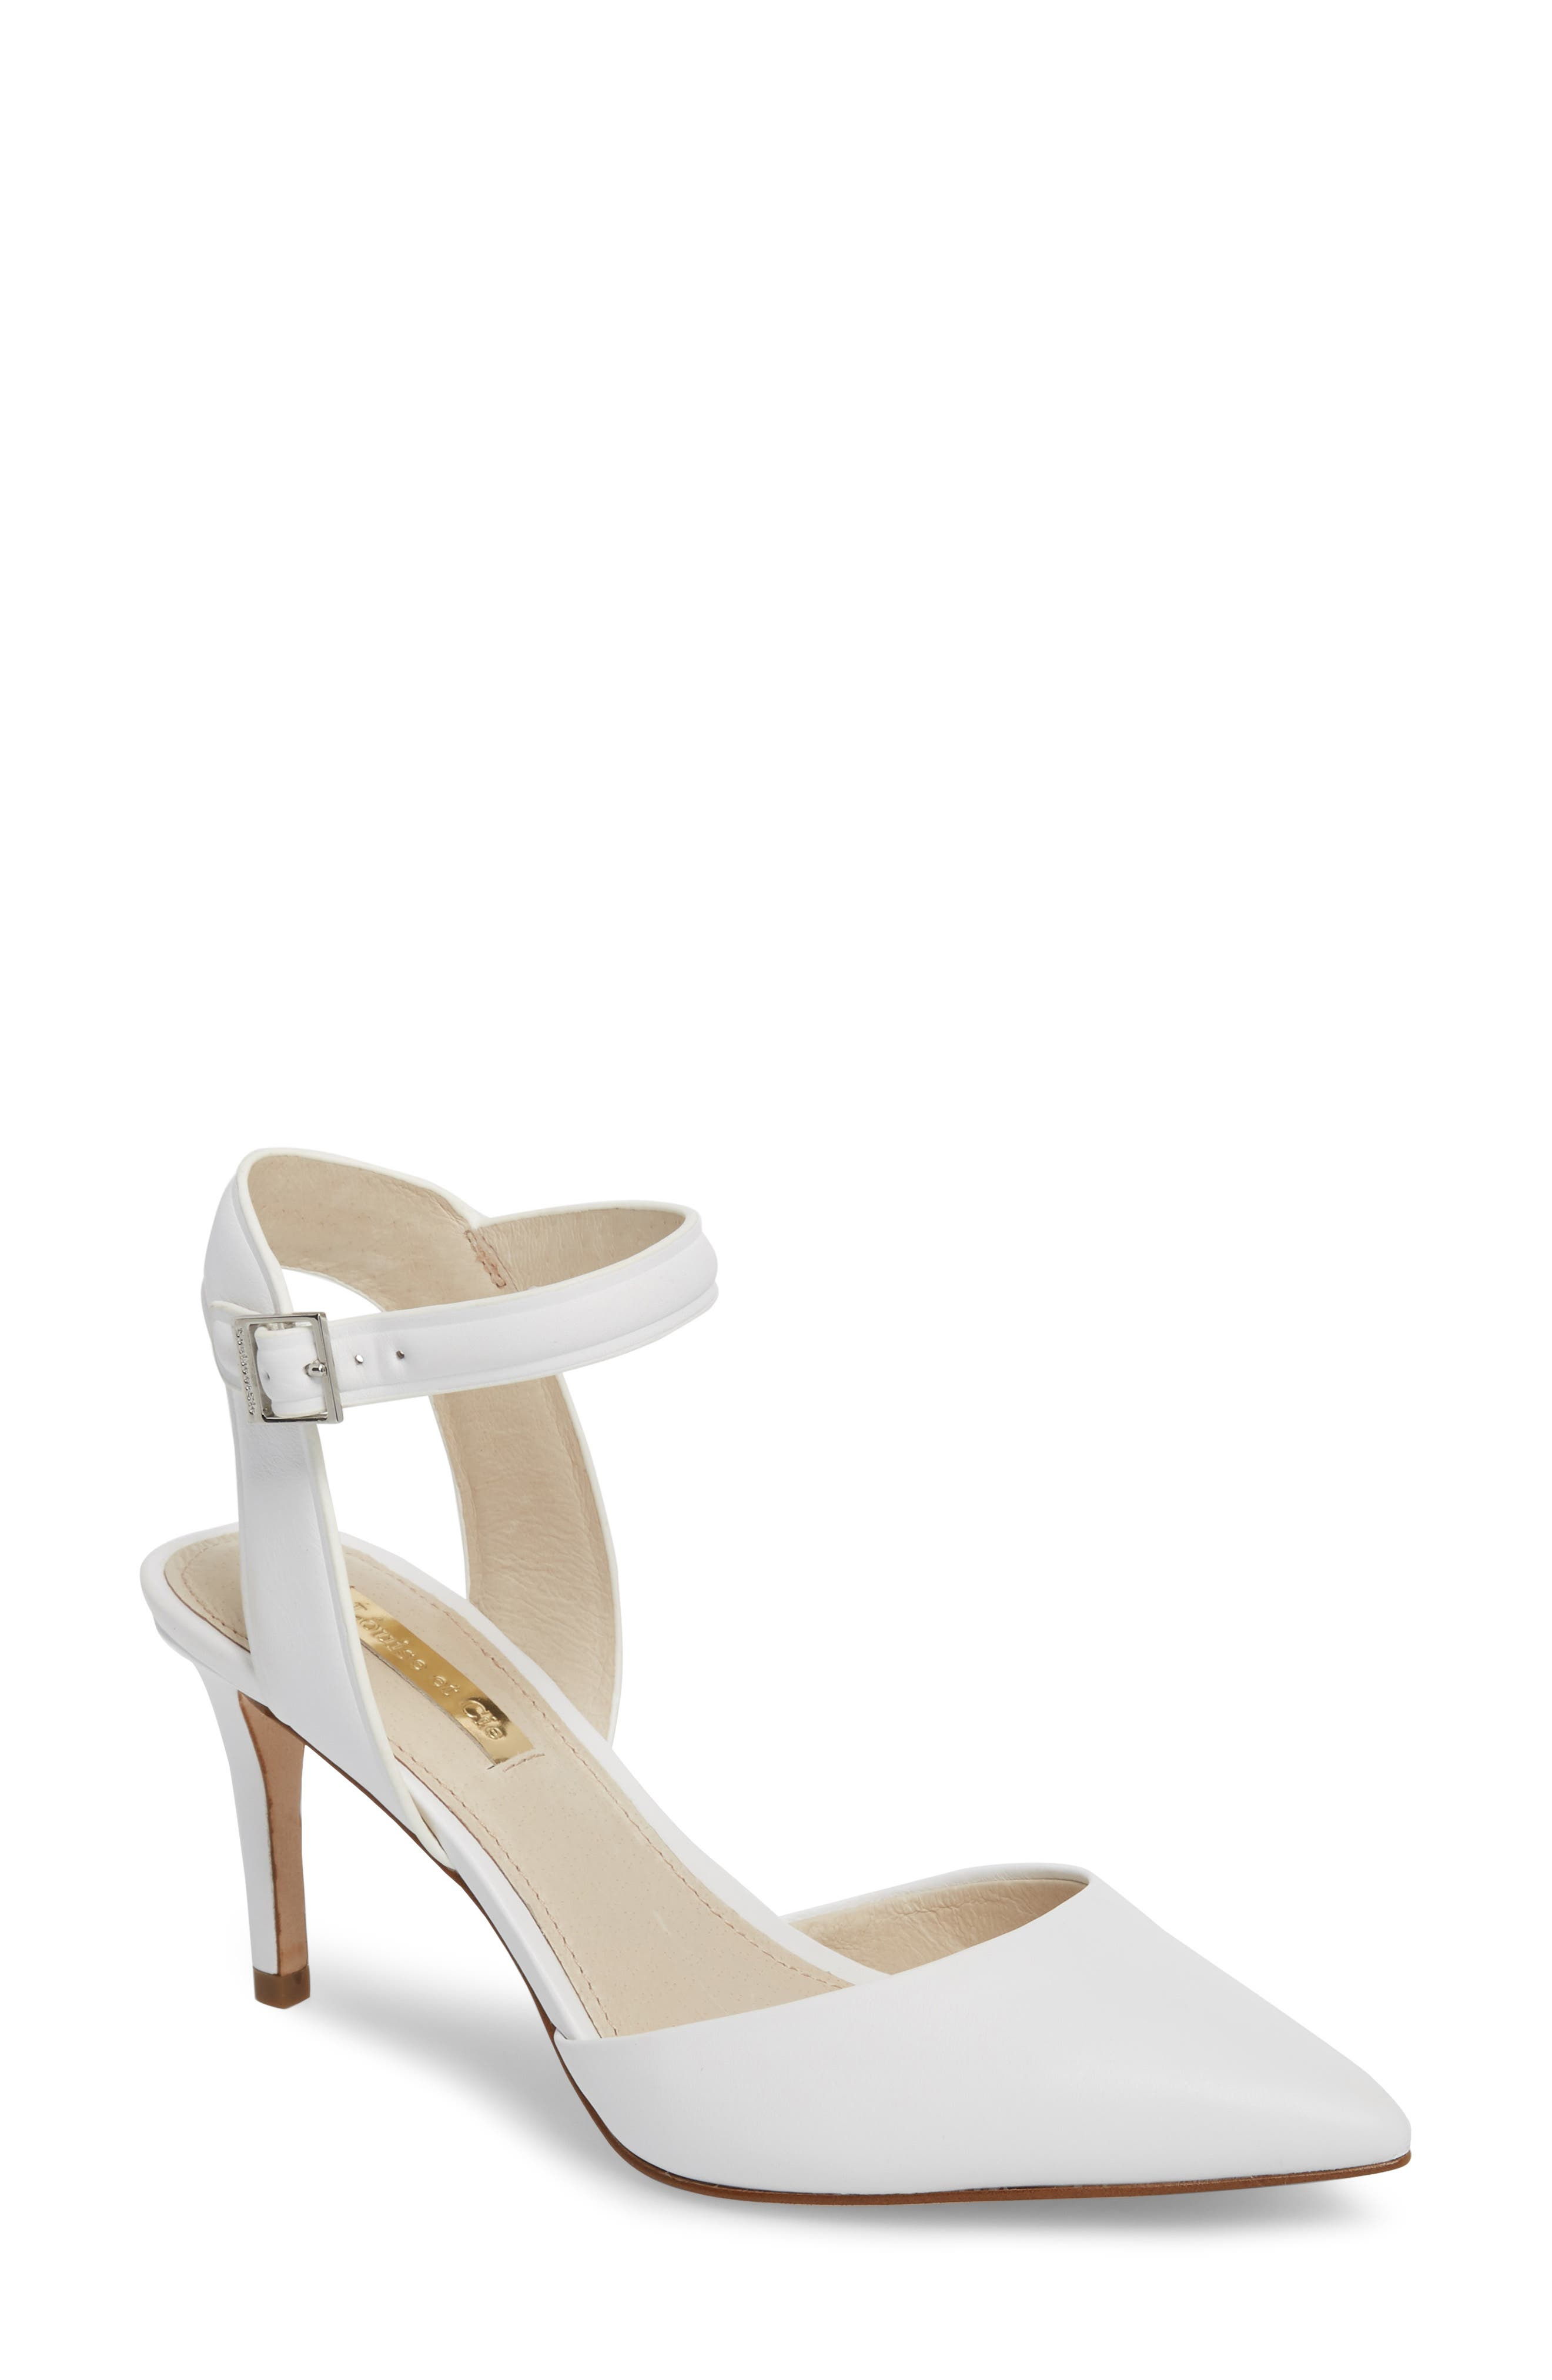 Kota Ankle Strap Pump,                         Main,                         color, White Leather